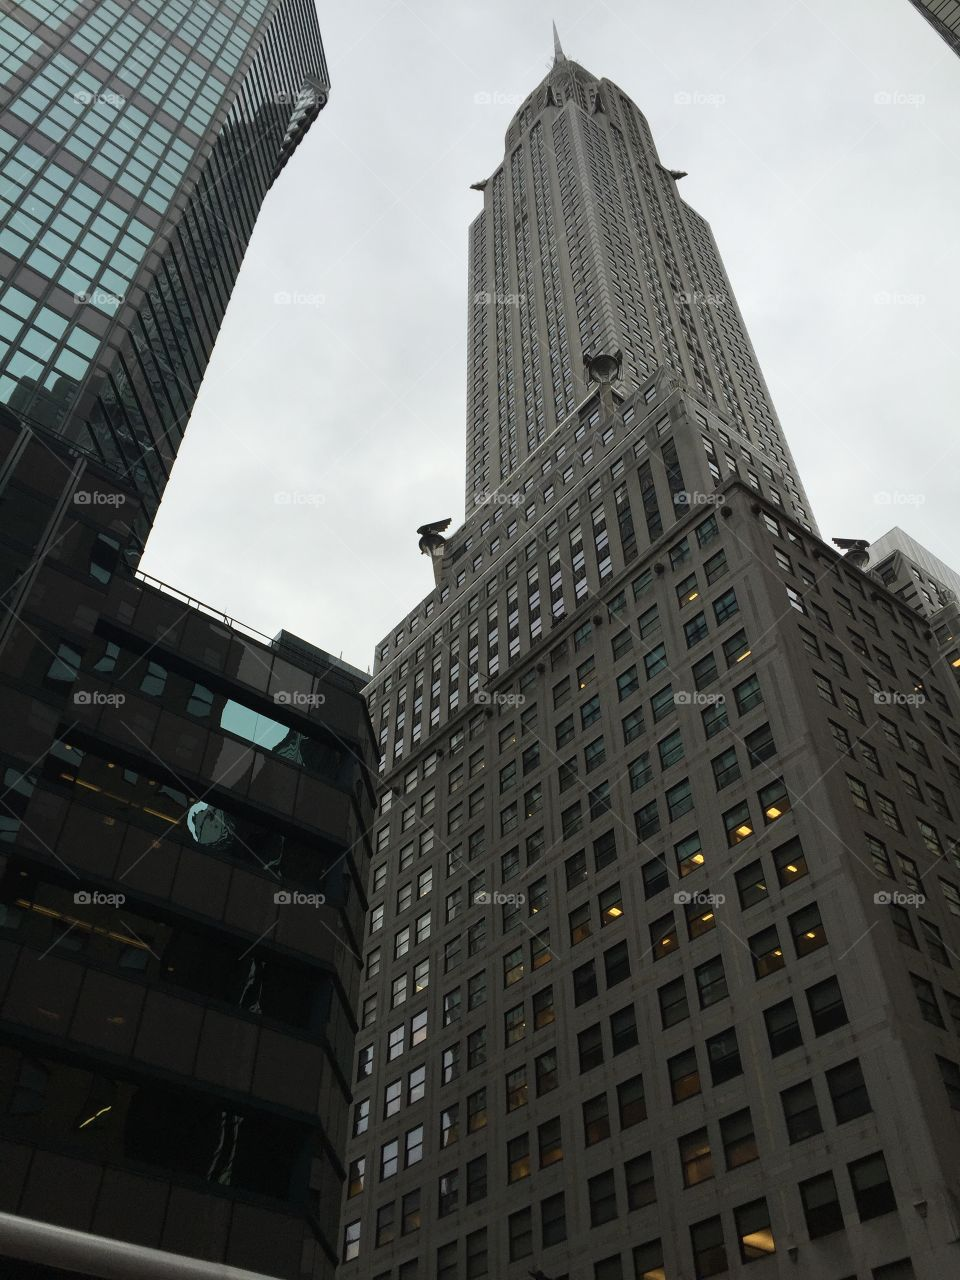 Chrysler Building. In NYC